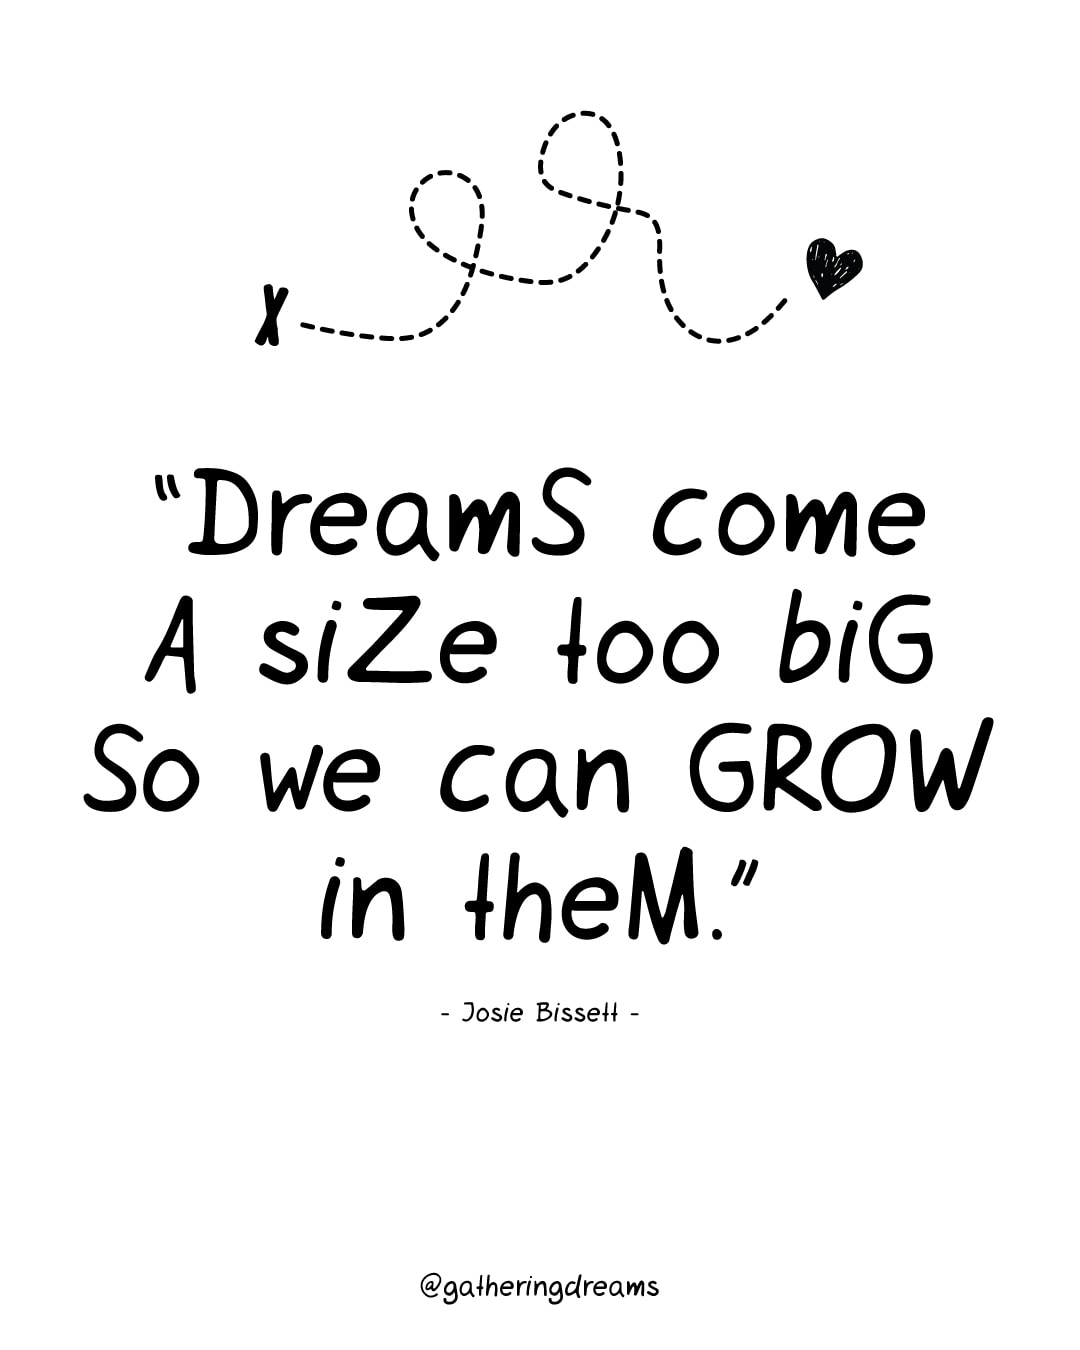 """Dreams come a size too big so we can grow in them."" Josie Bissett - The best dreams quotes of all times #inspiration #inspirationalquotes #motivationalquotes #dreams"